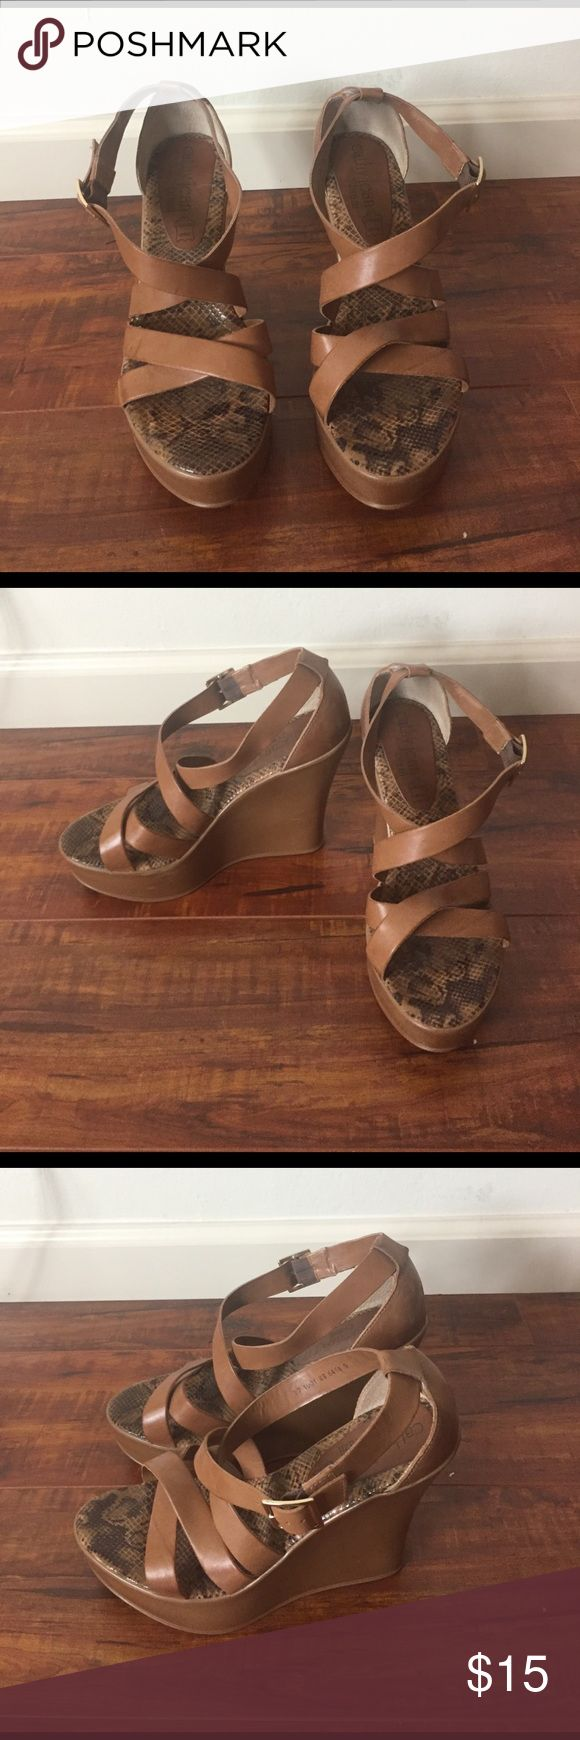 Camel heeled sandals 4.5 inch heeled camel color sandals! Perfect for a beach vacation. Cathy Jean Shoes Sandals